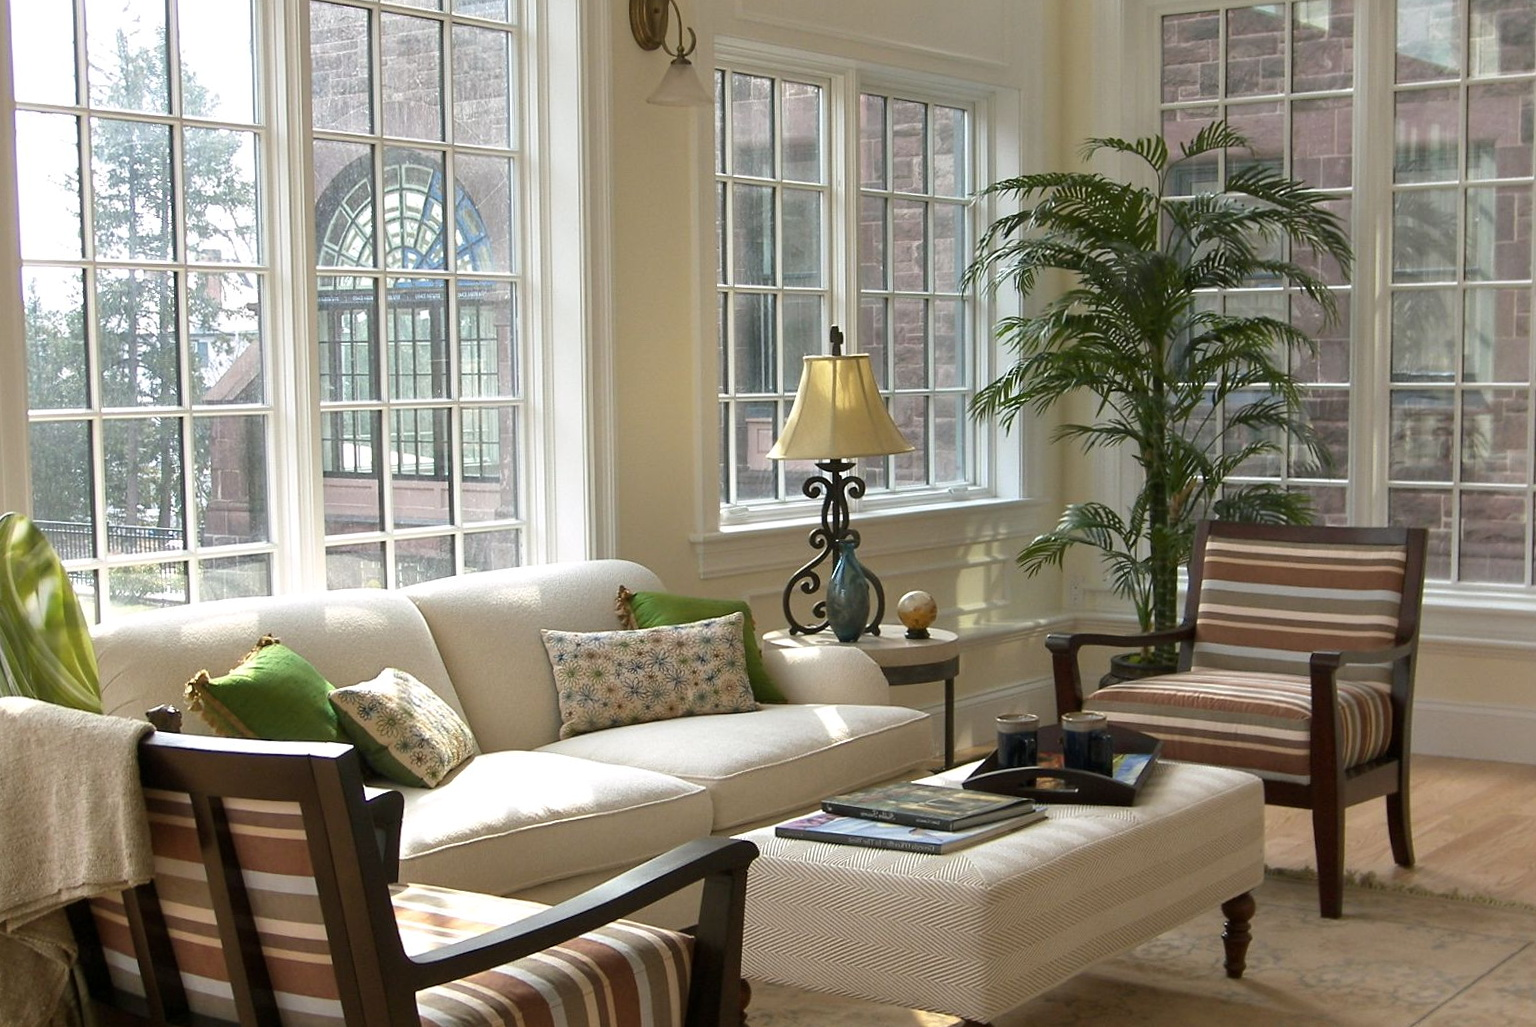 Furniture For Sun Room. 100 Front Porch Floor Paint Colors Articles With  Furniture For Sun